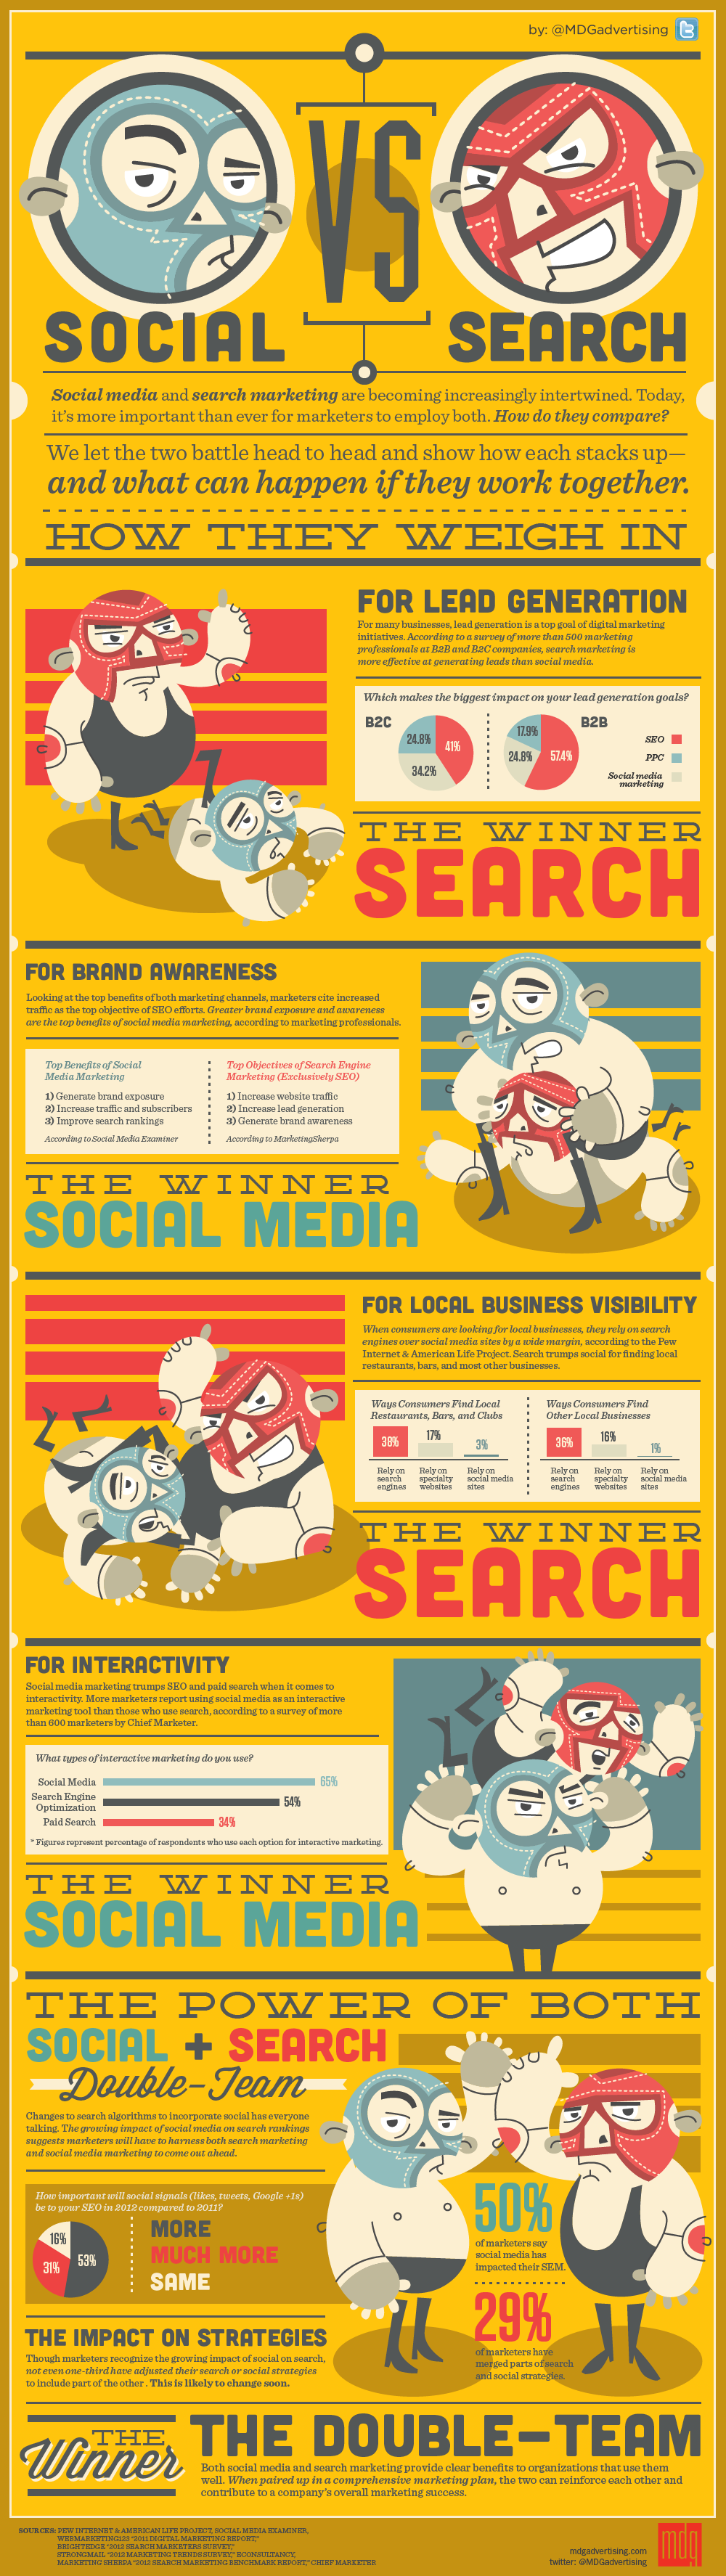 12-11-2012 social-vs-search